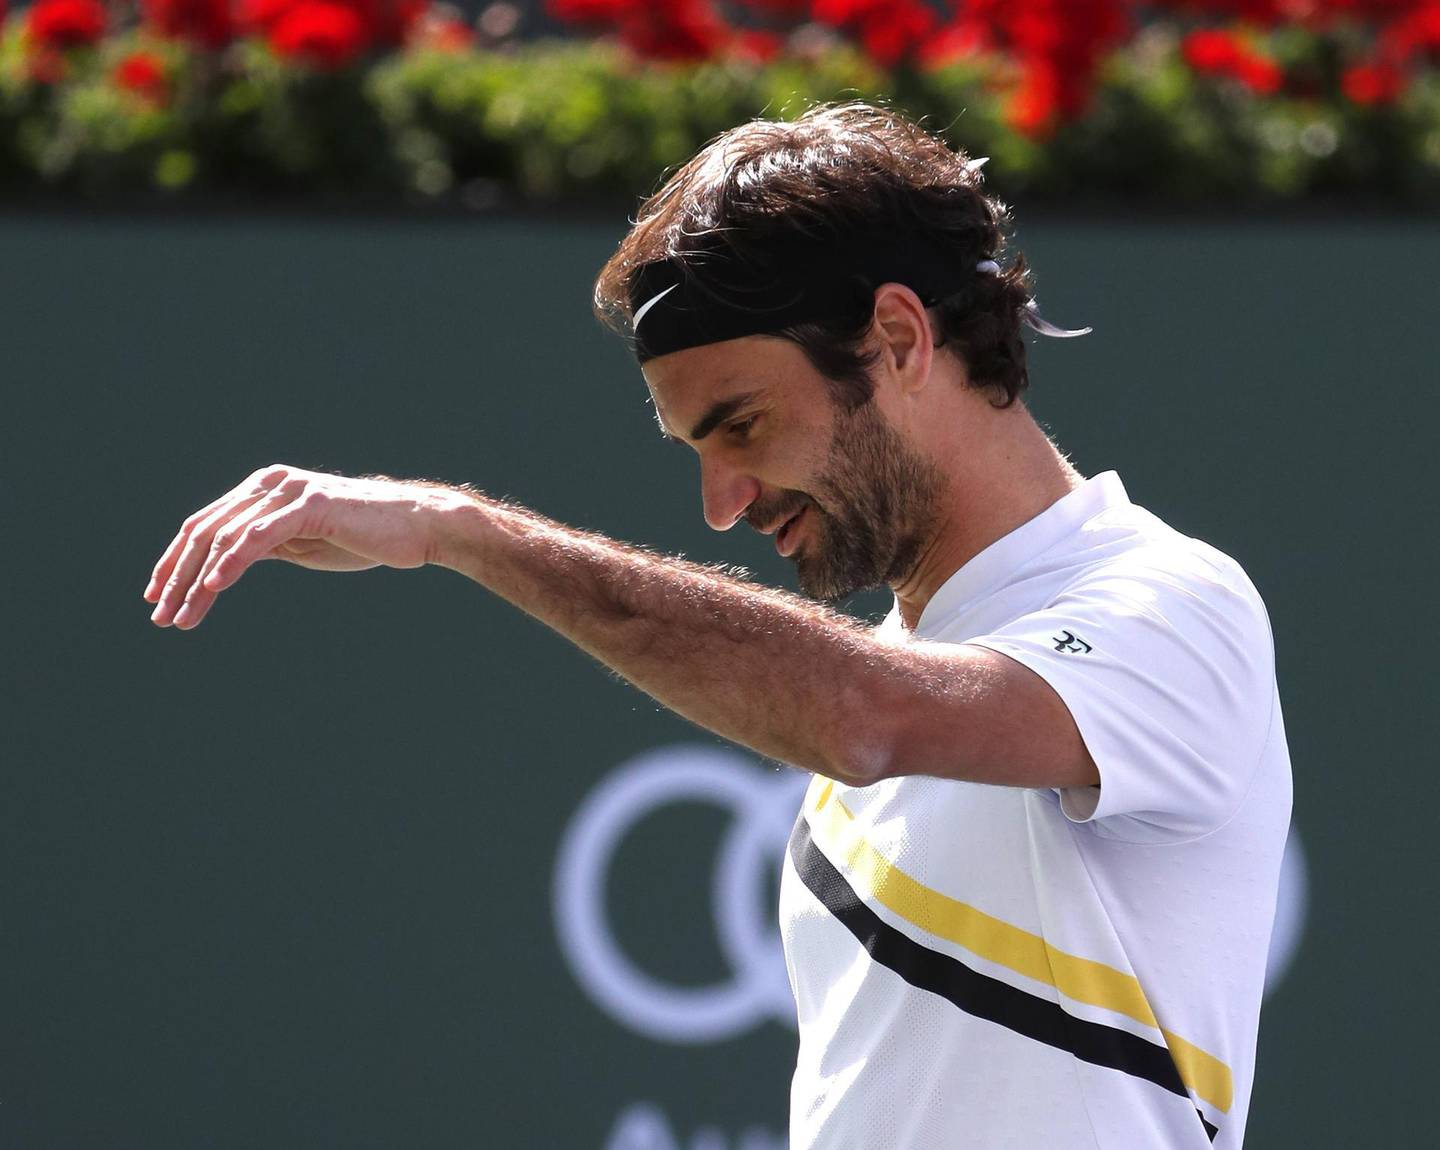 epa06613499 Roger Federer from Switzerland reacts during his finals match against Juan Martin Del Potro from Argentina at the BNP Paribas Open at the Indian Wells Tennis Garden in Indian Wells, California, USA, 18 March 2018.  EPA/MIKE NELSON